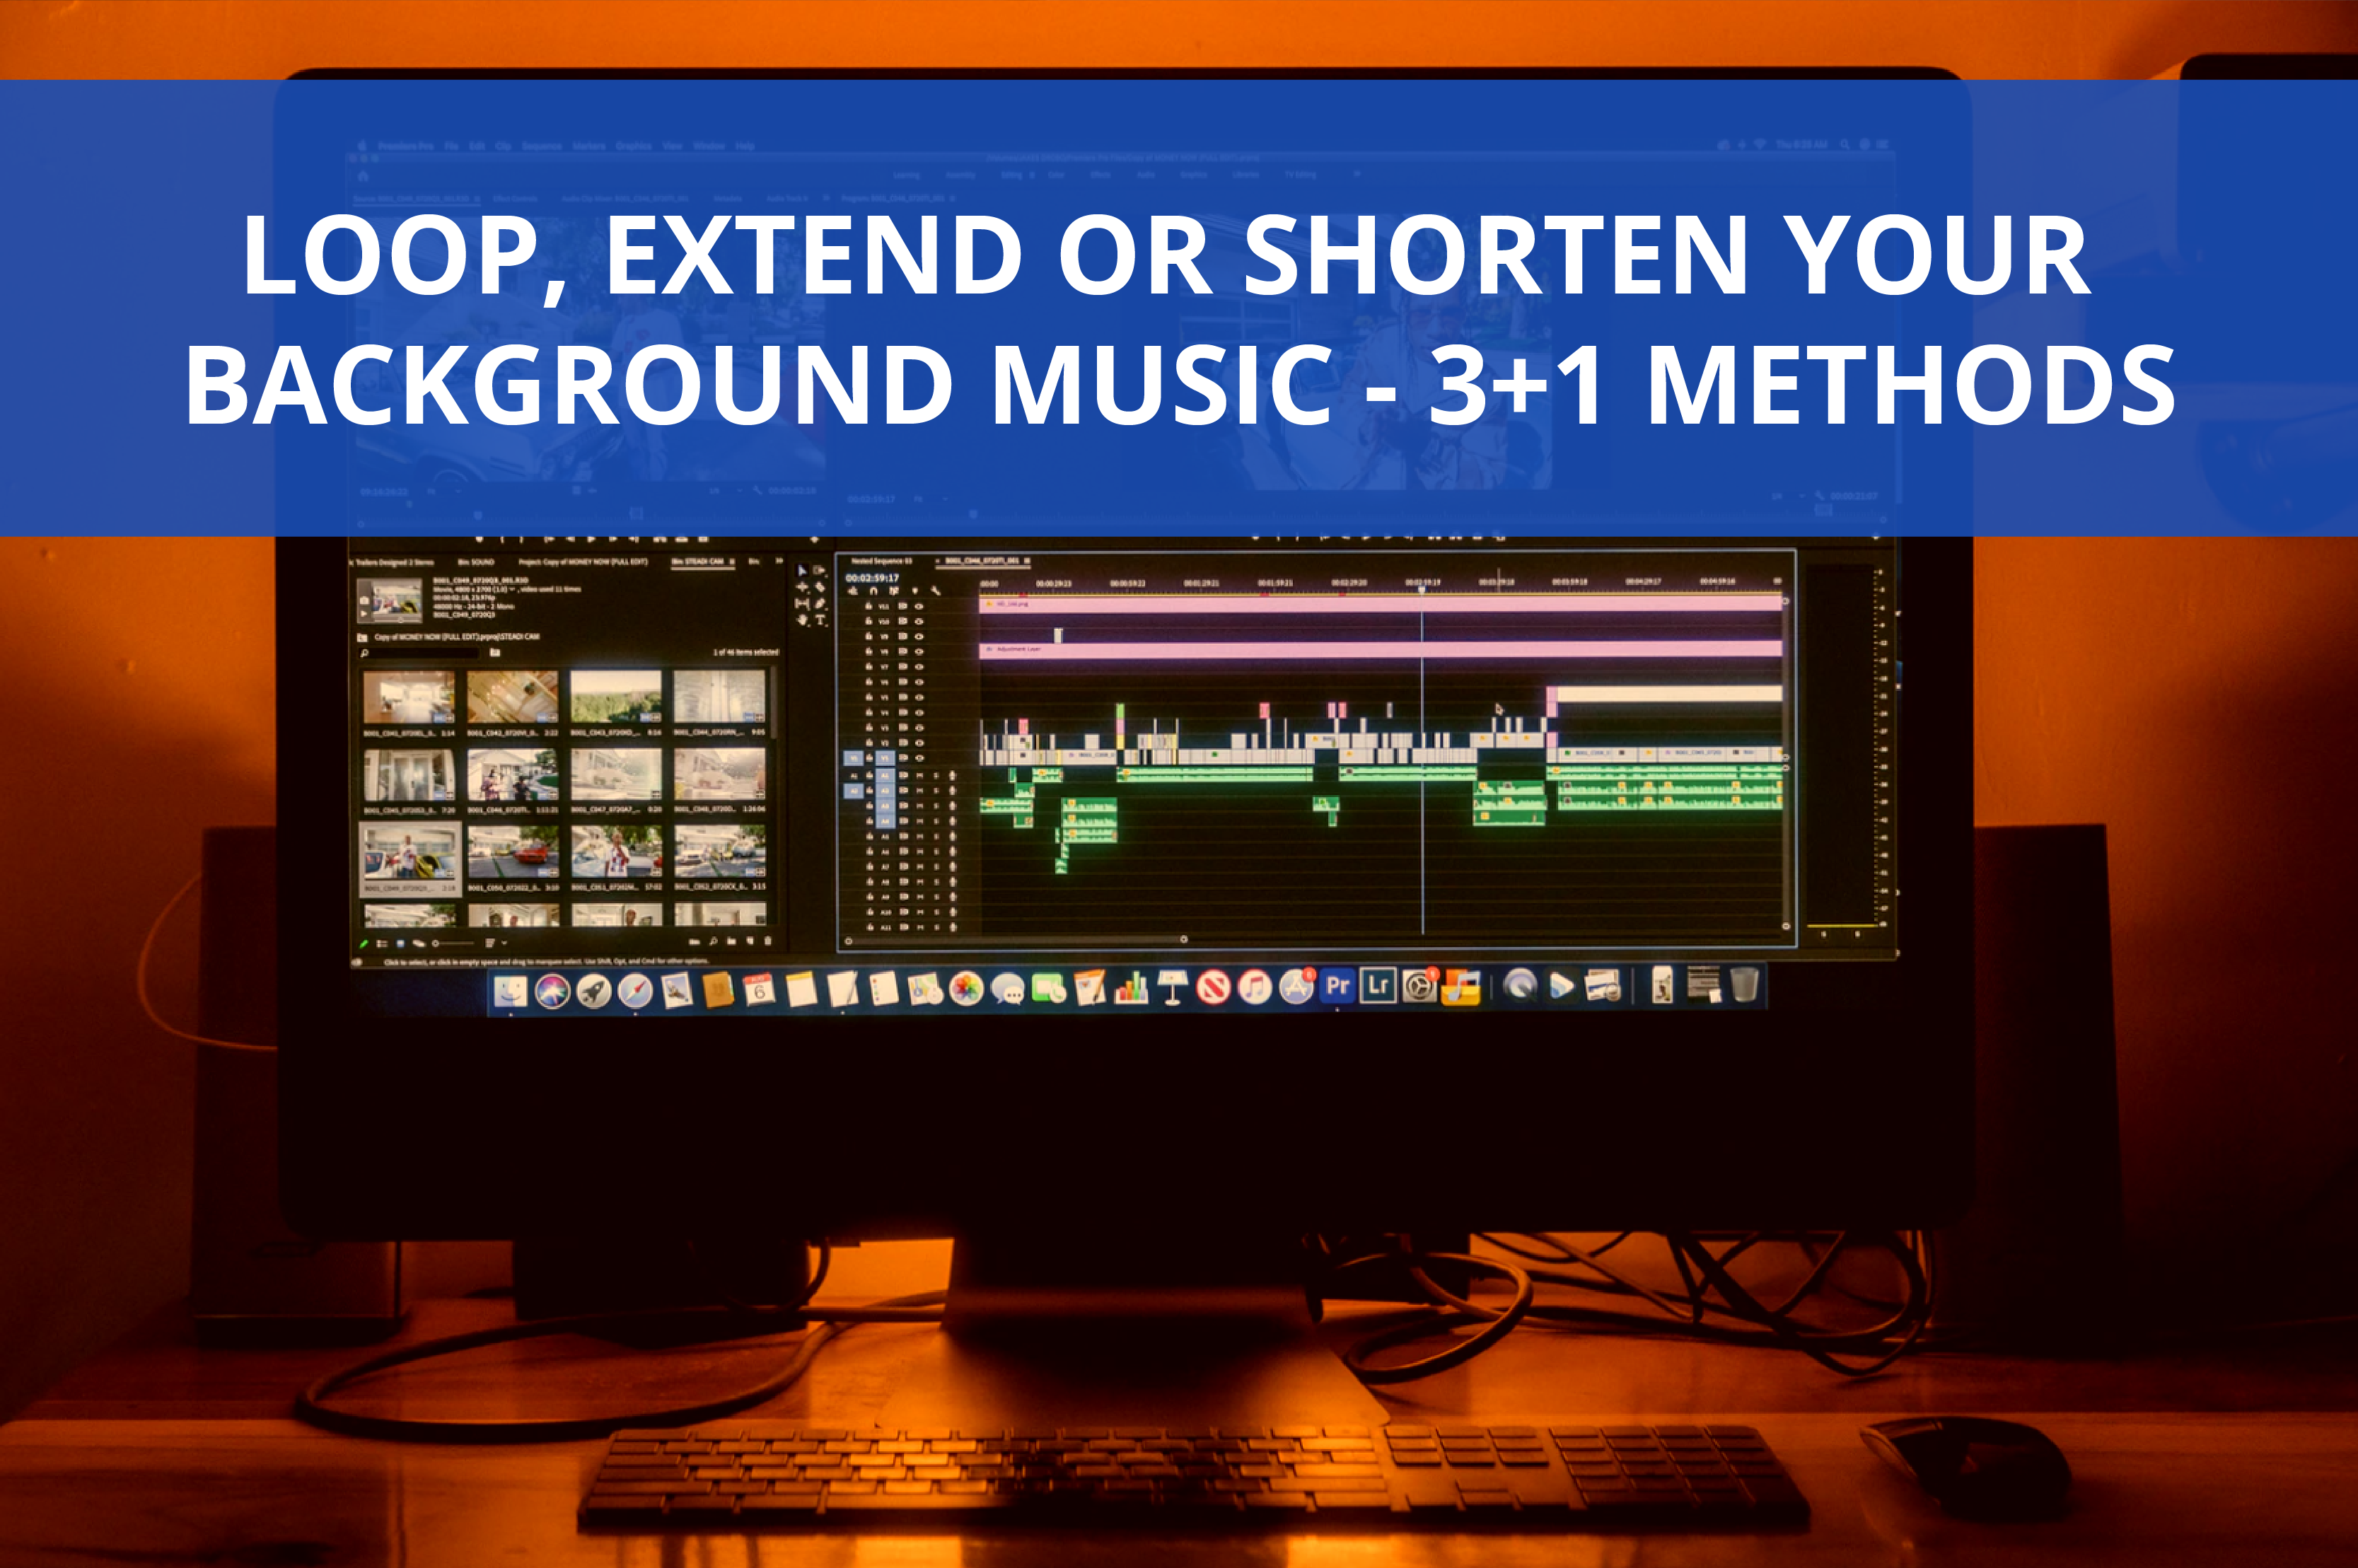 How to Loop, Extend or Shorten Your Background Music - 3 + 1 Methods